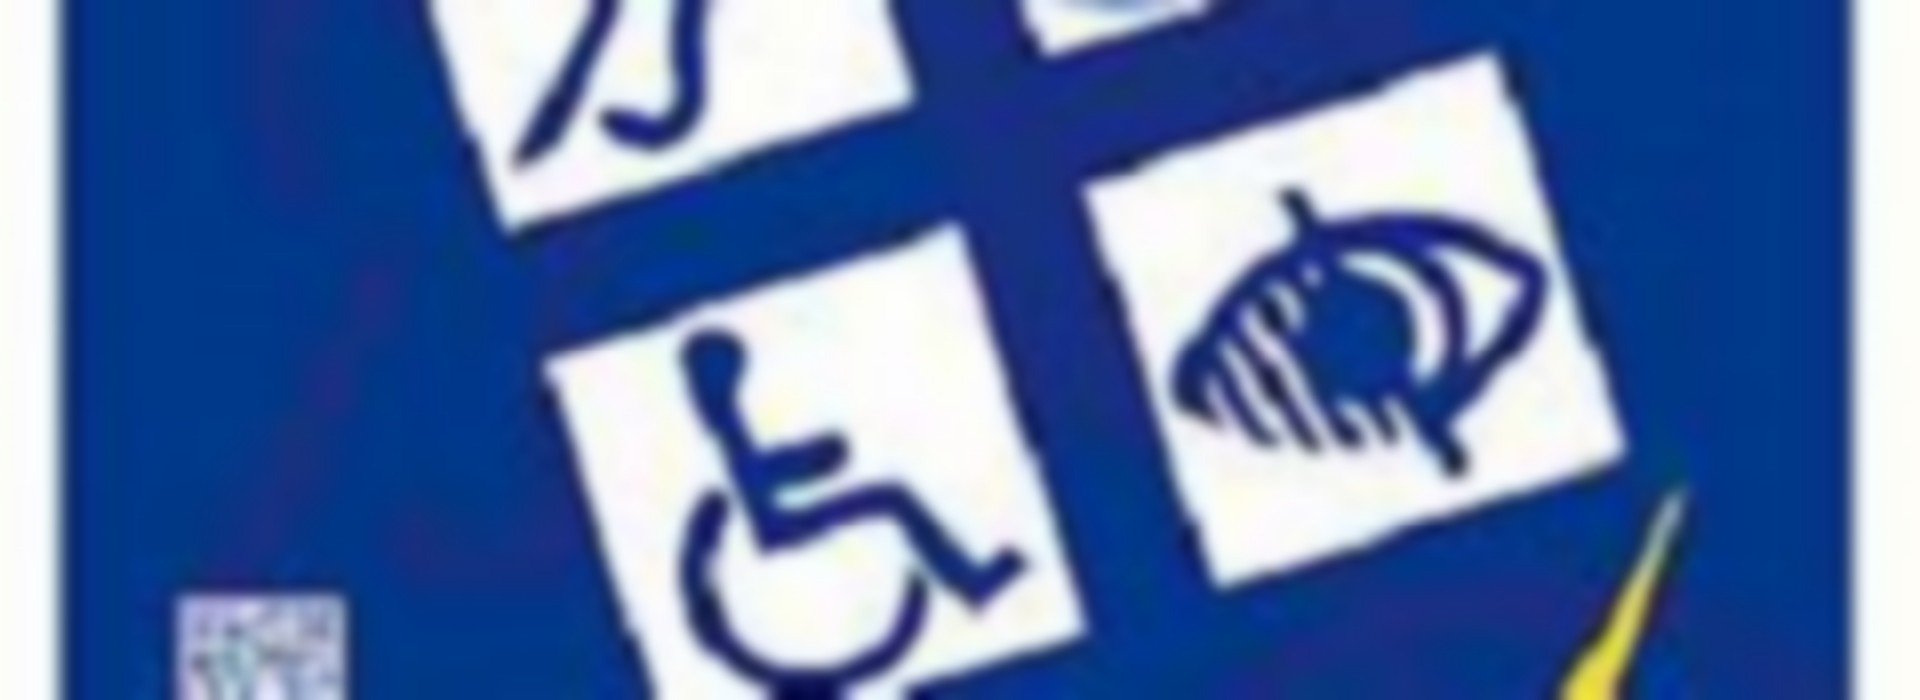 JOURNEES NATIONALES TOURISME ET HANDICAP